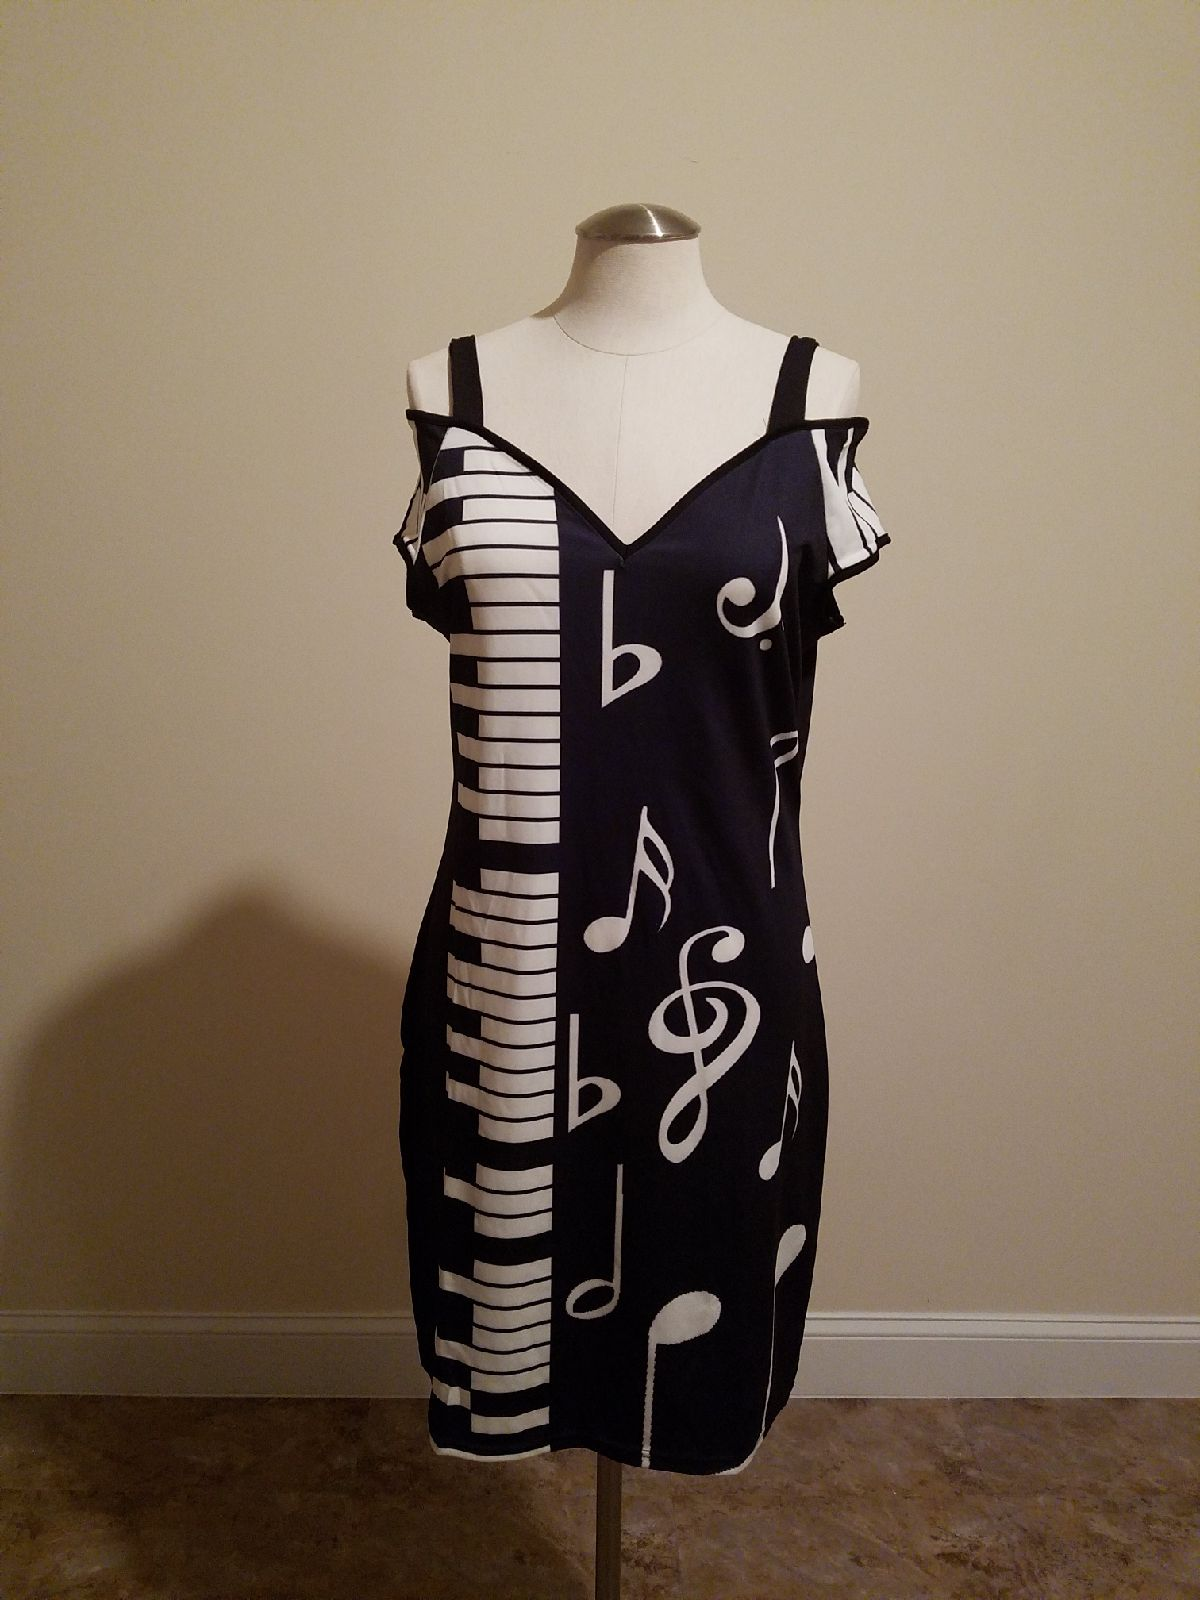 Alluring Musical Note bodycon dress.